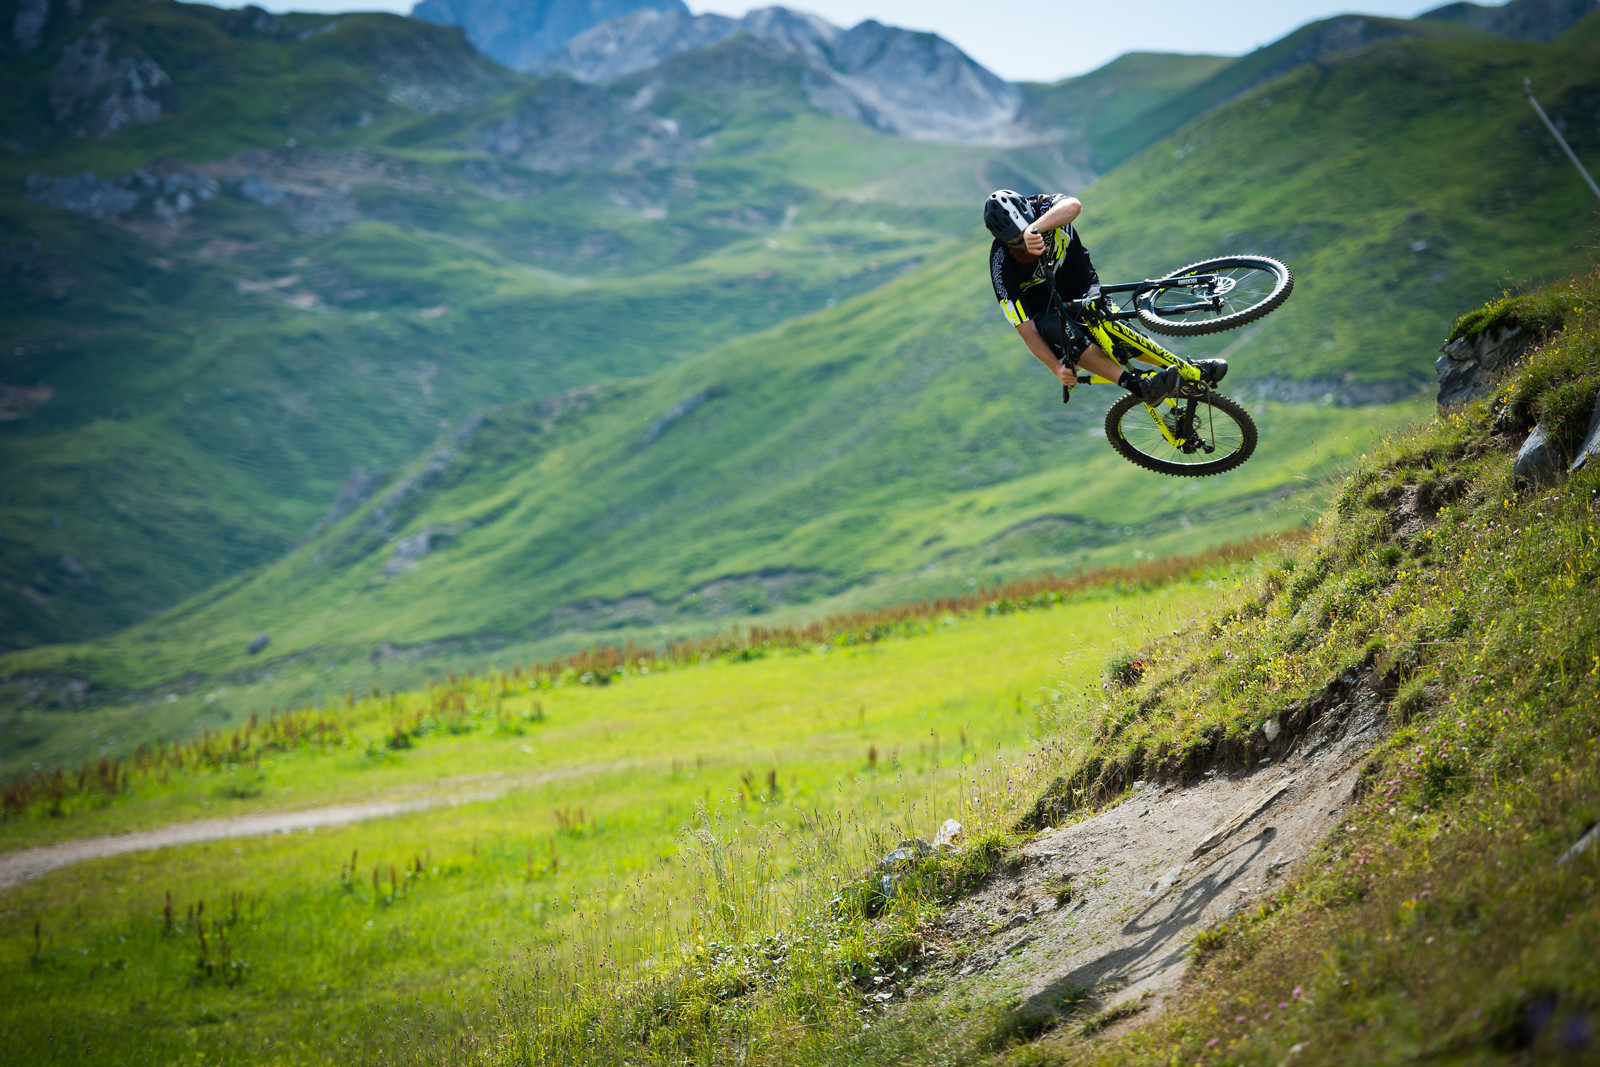 PEF Riding the Commencal Meta V4 - iceman2058 - Mountain Biking Pictures - Vital MTB